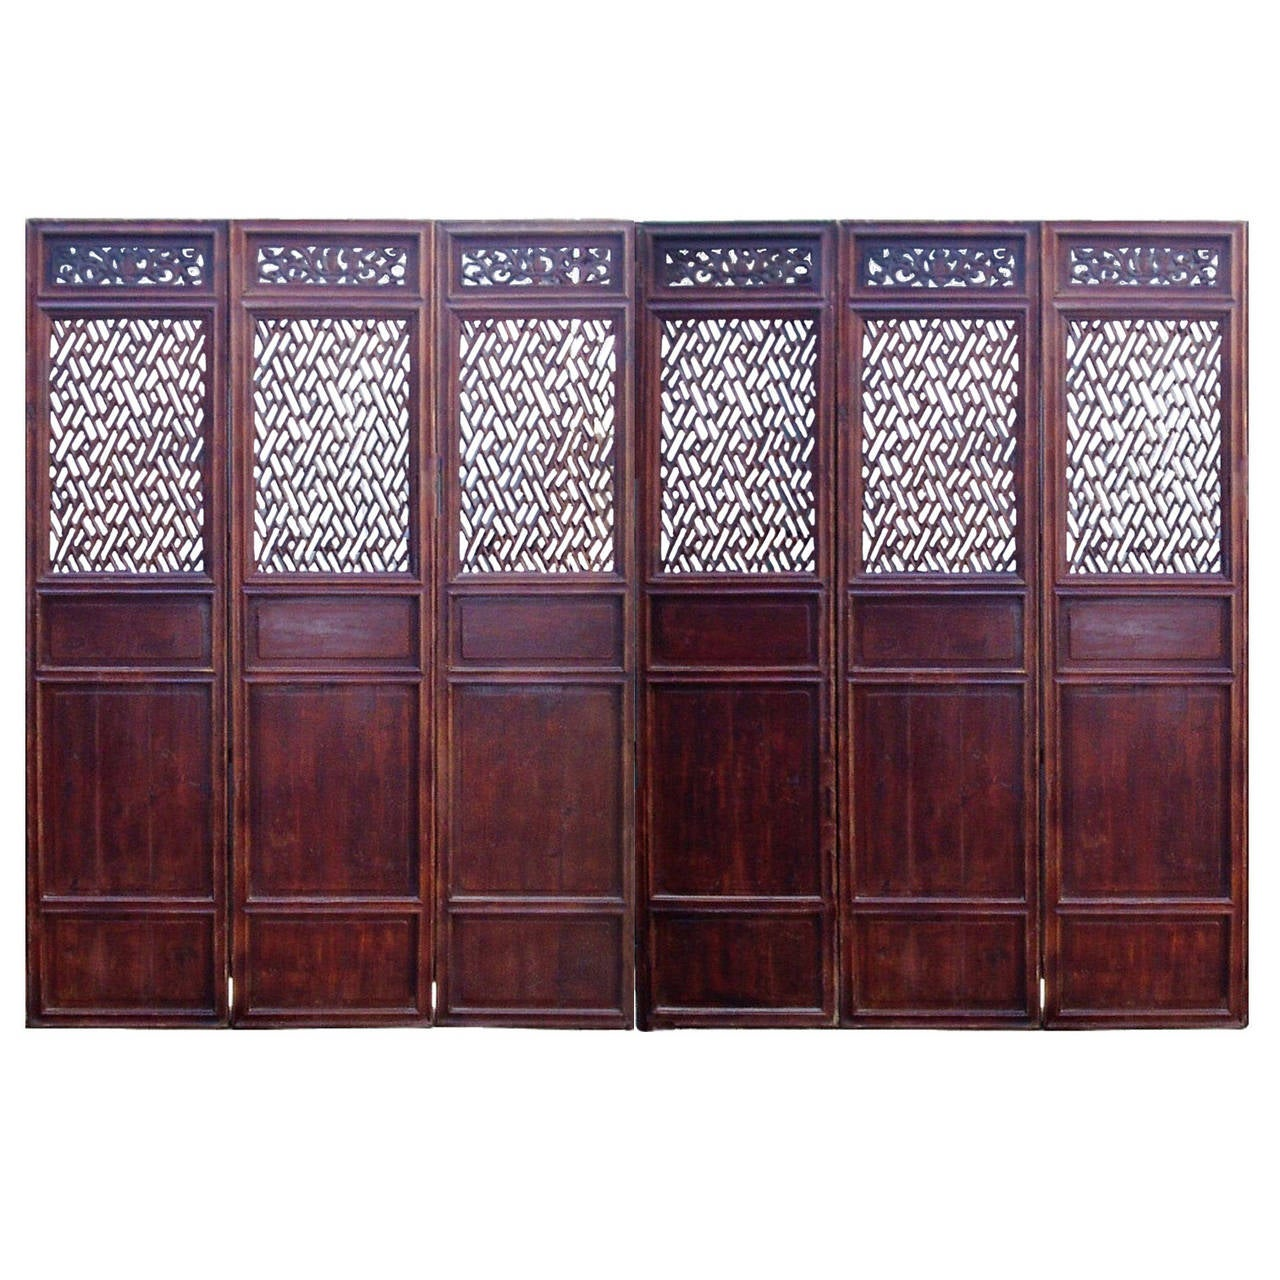 Chinese Antique Lattice Screen Doors 19th Century At 1stdibs. Full resolution  img, nominally Width 1280 Height 1280 pixels, img with #411E27.